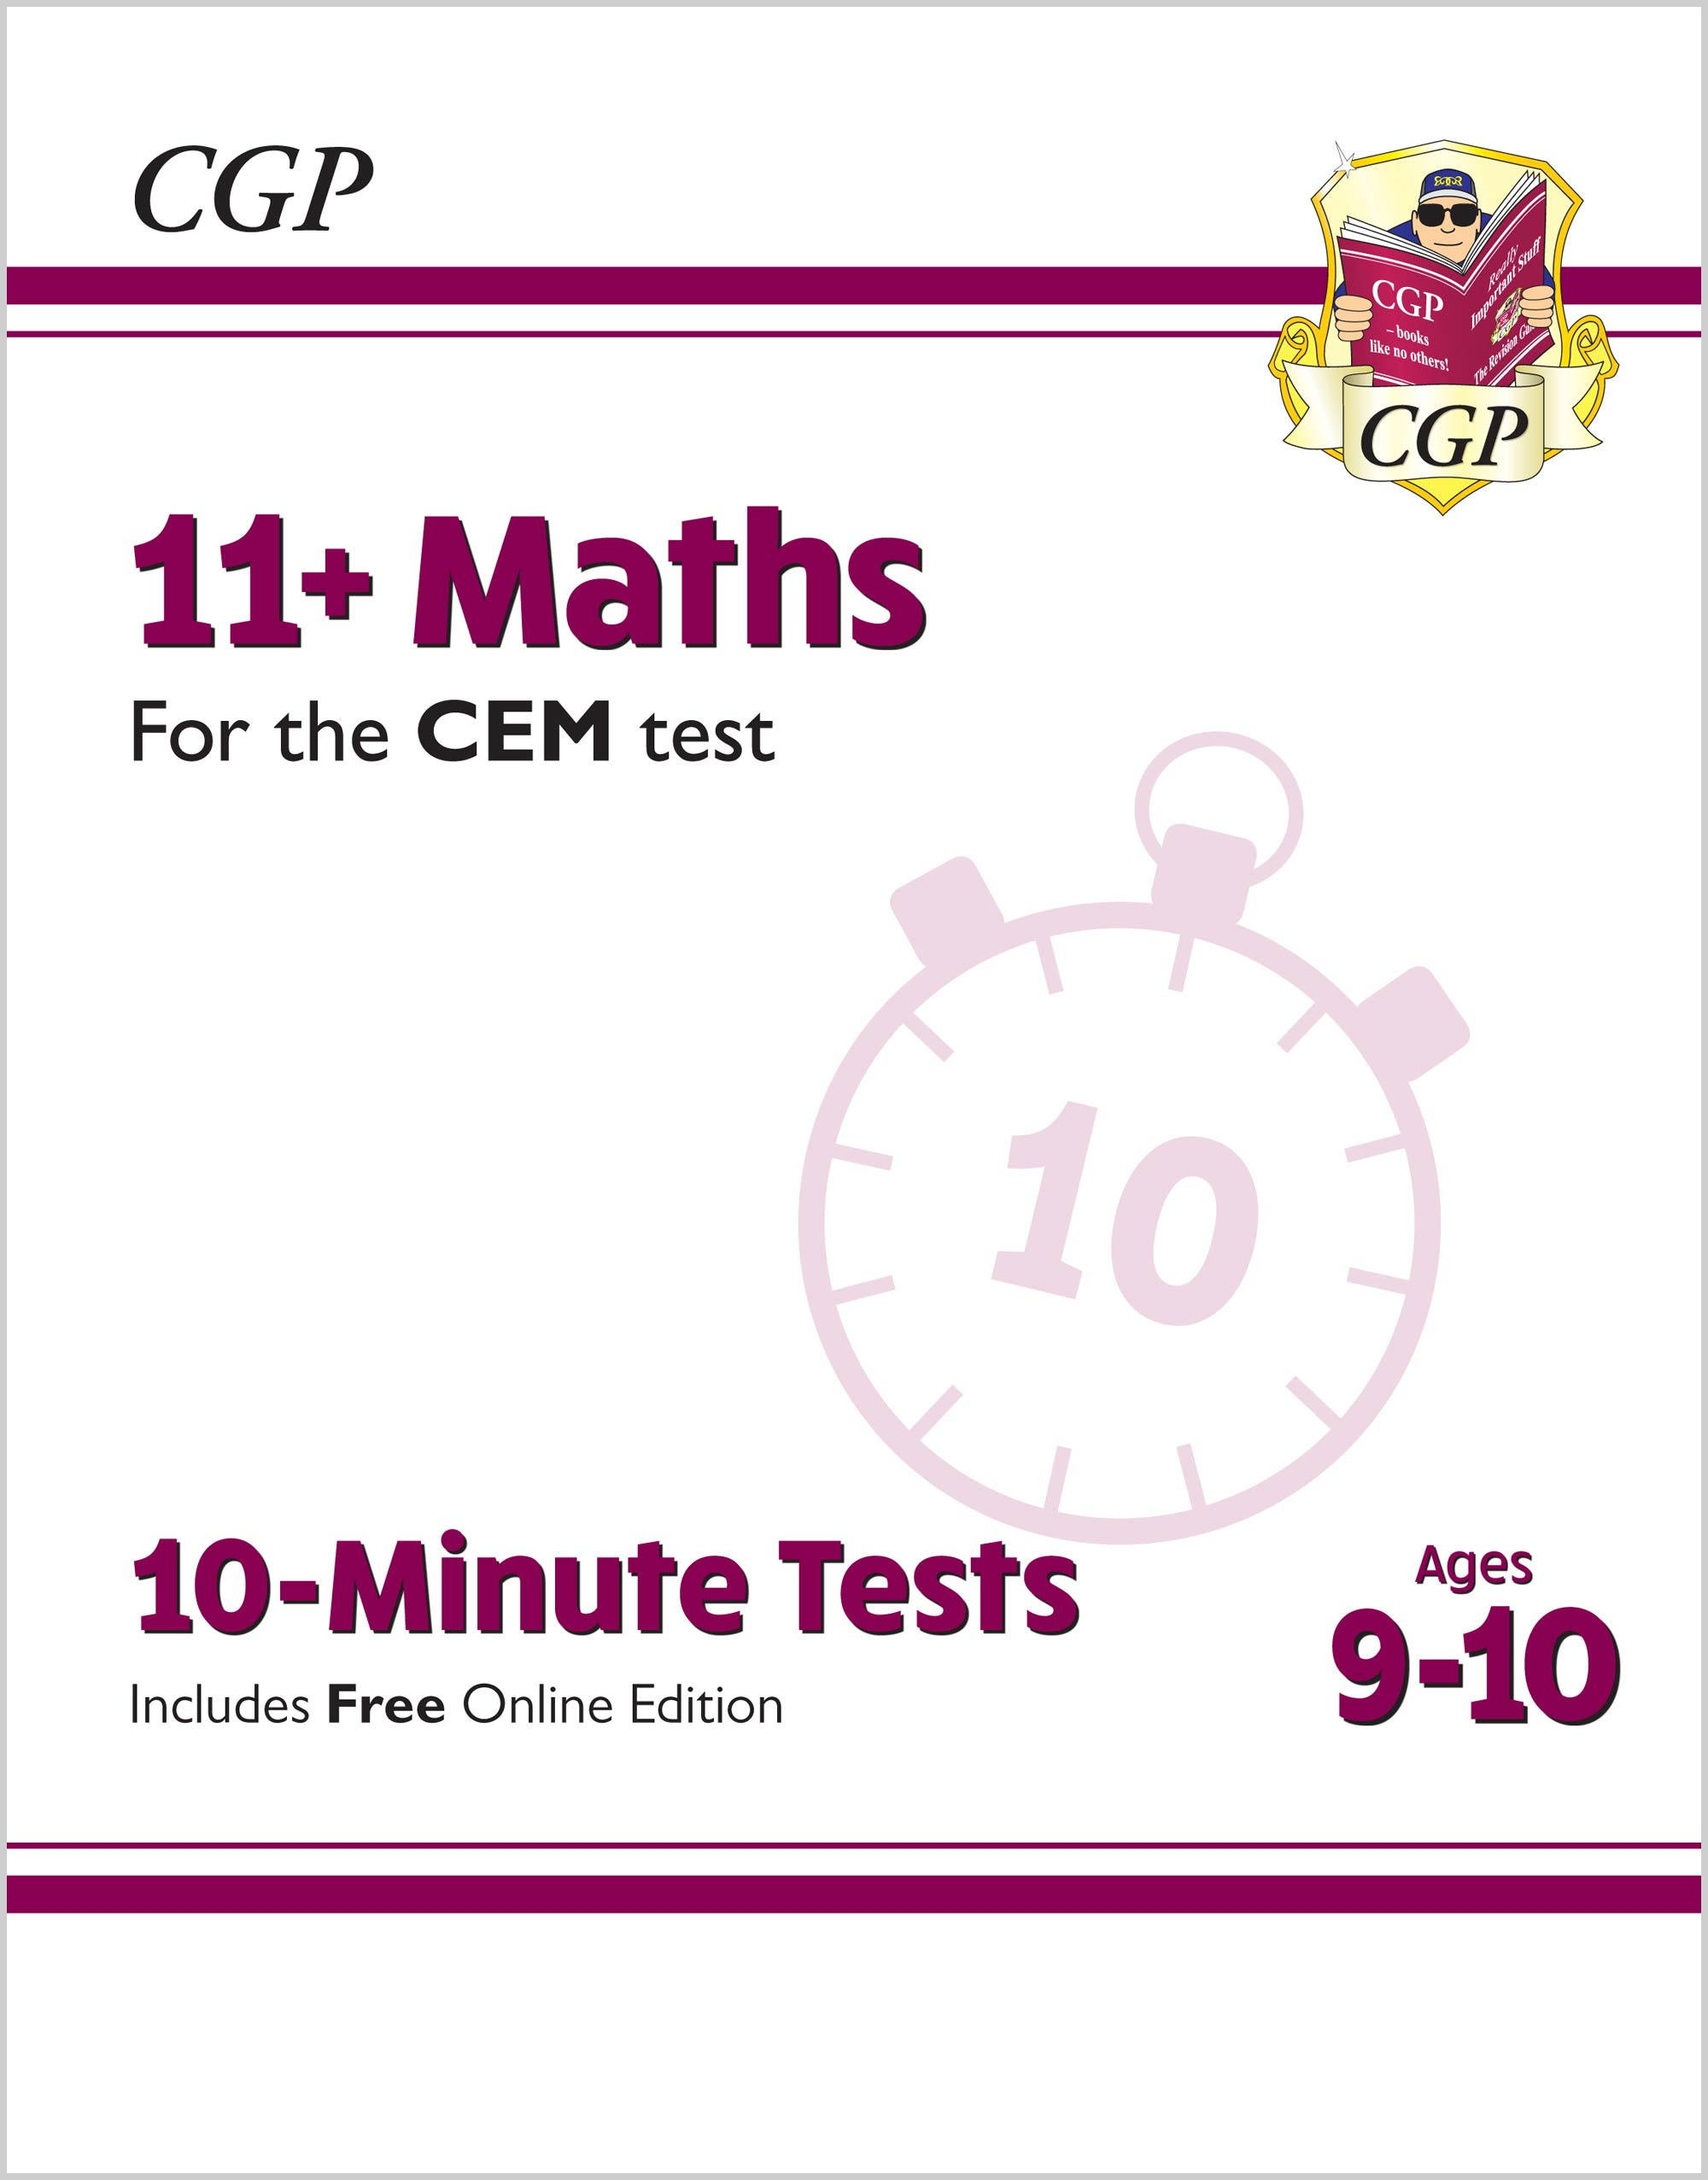 M5XPDE2 - New 11+ CEM 10-Minute Tests: Maths - Ages 9-10 (with Online Edition)